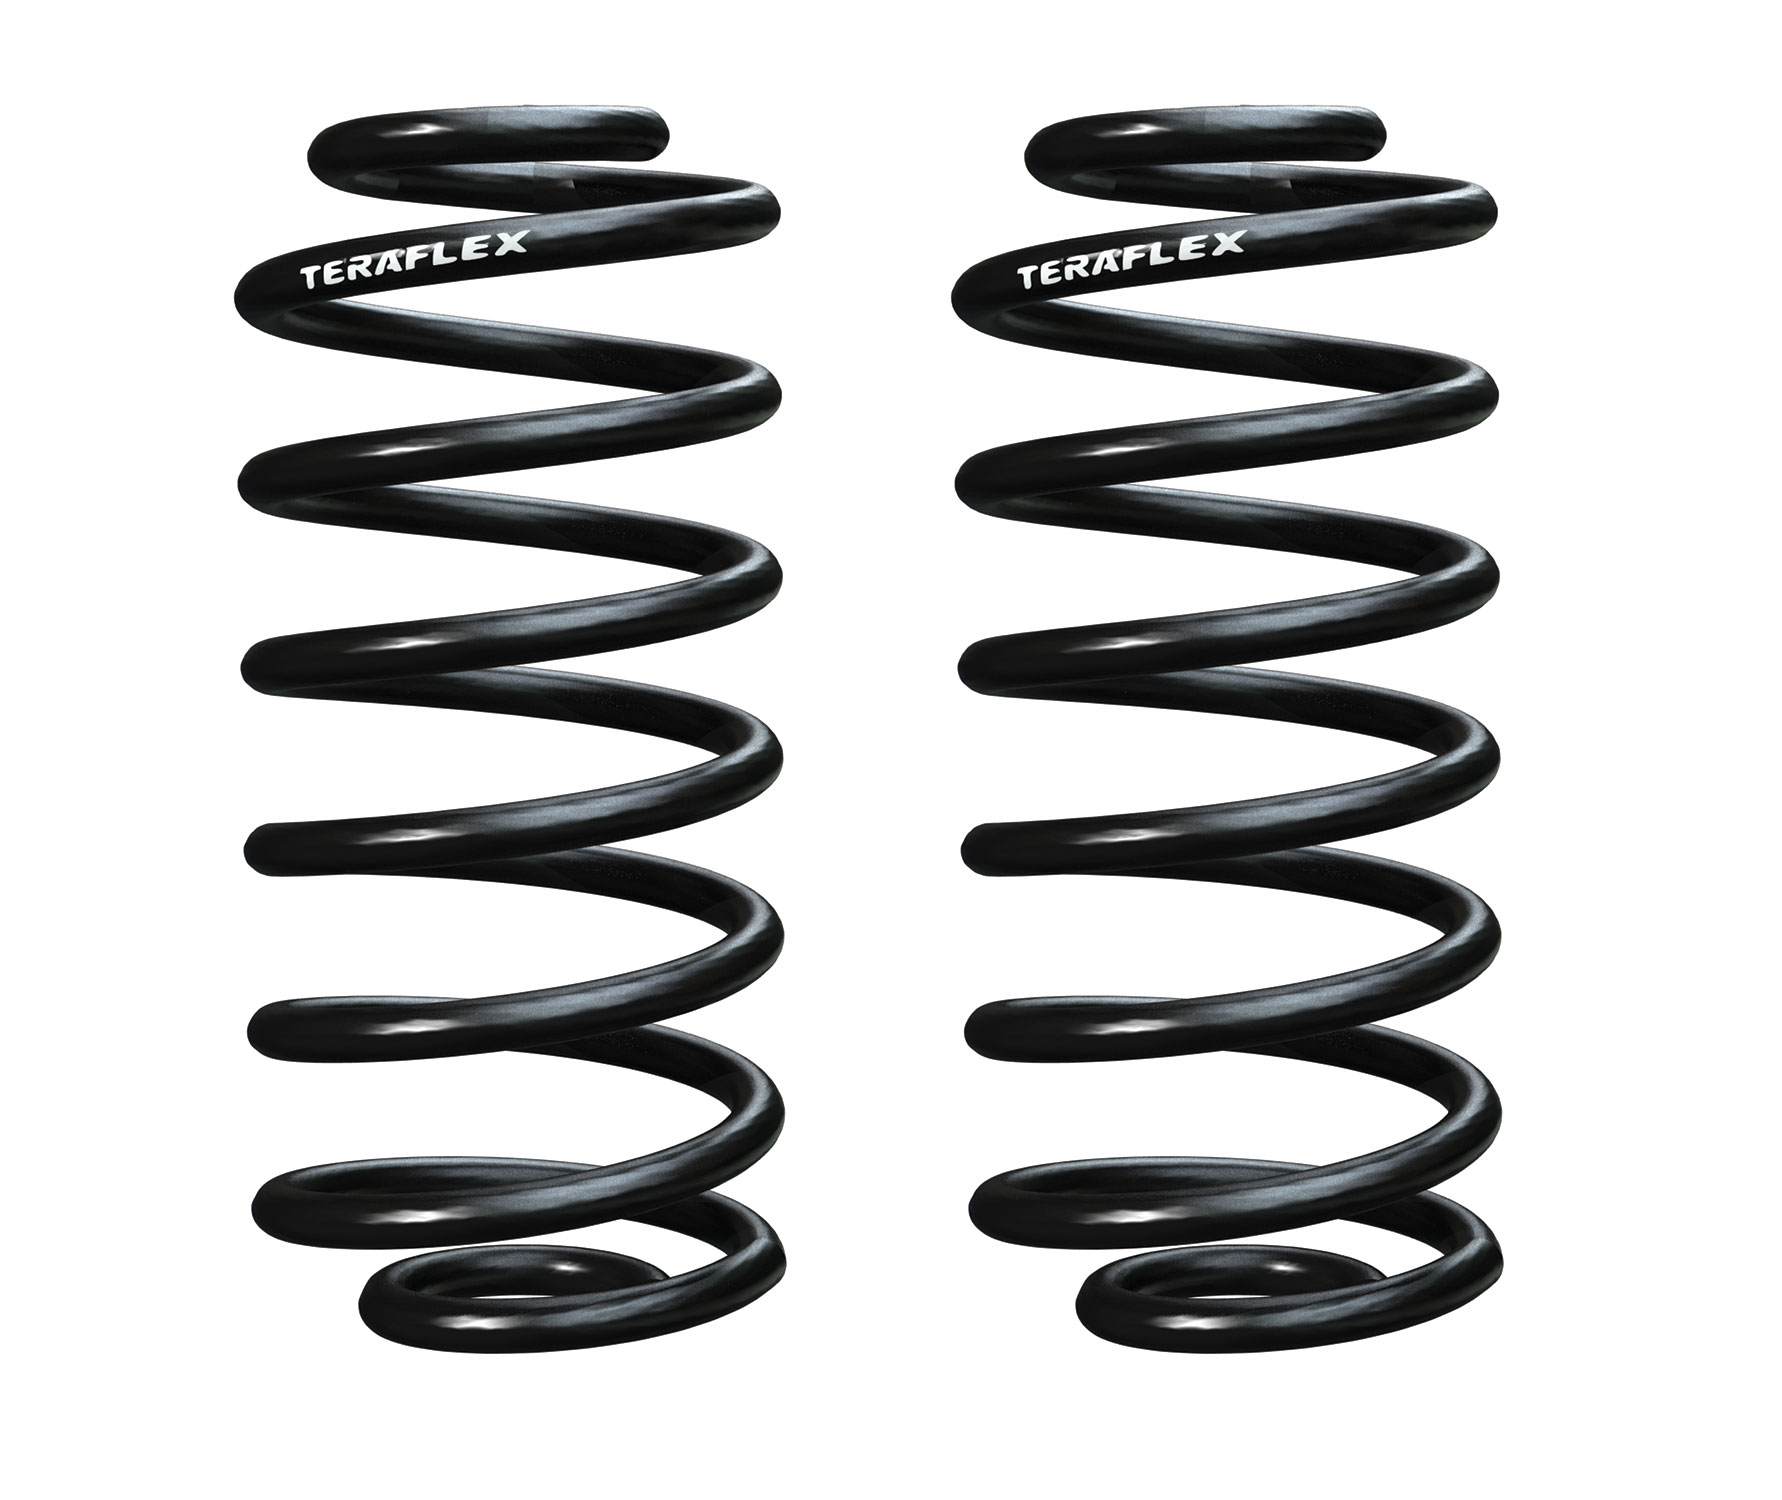 Teraflex Rear Coil Springs 2in - TJ/LJ